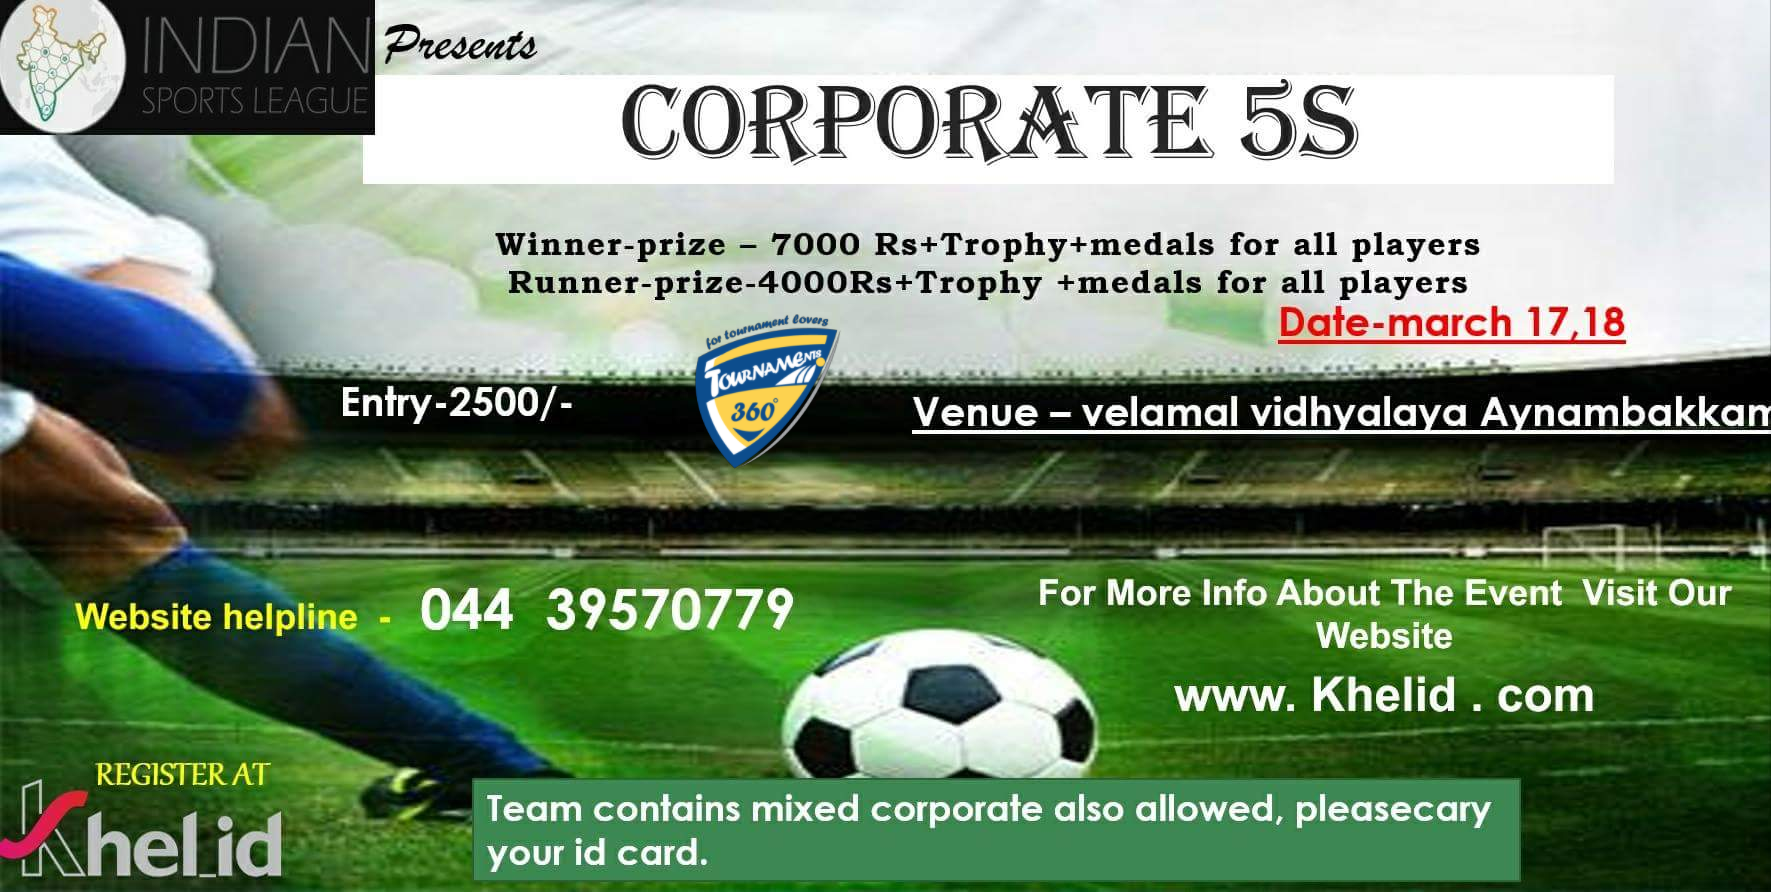 Corporate 5s Football Tournament